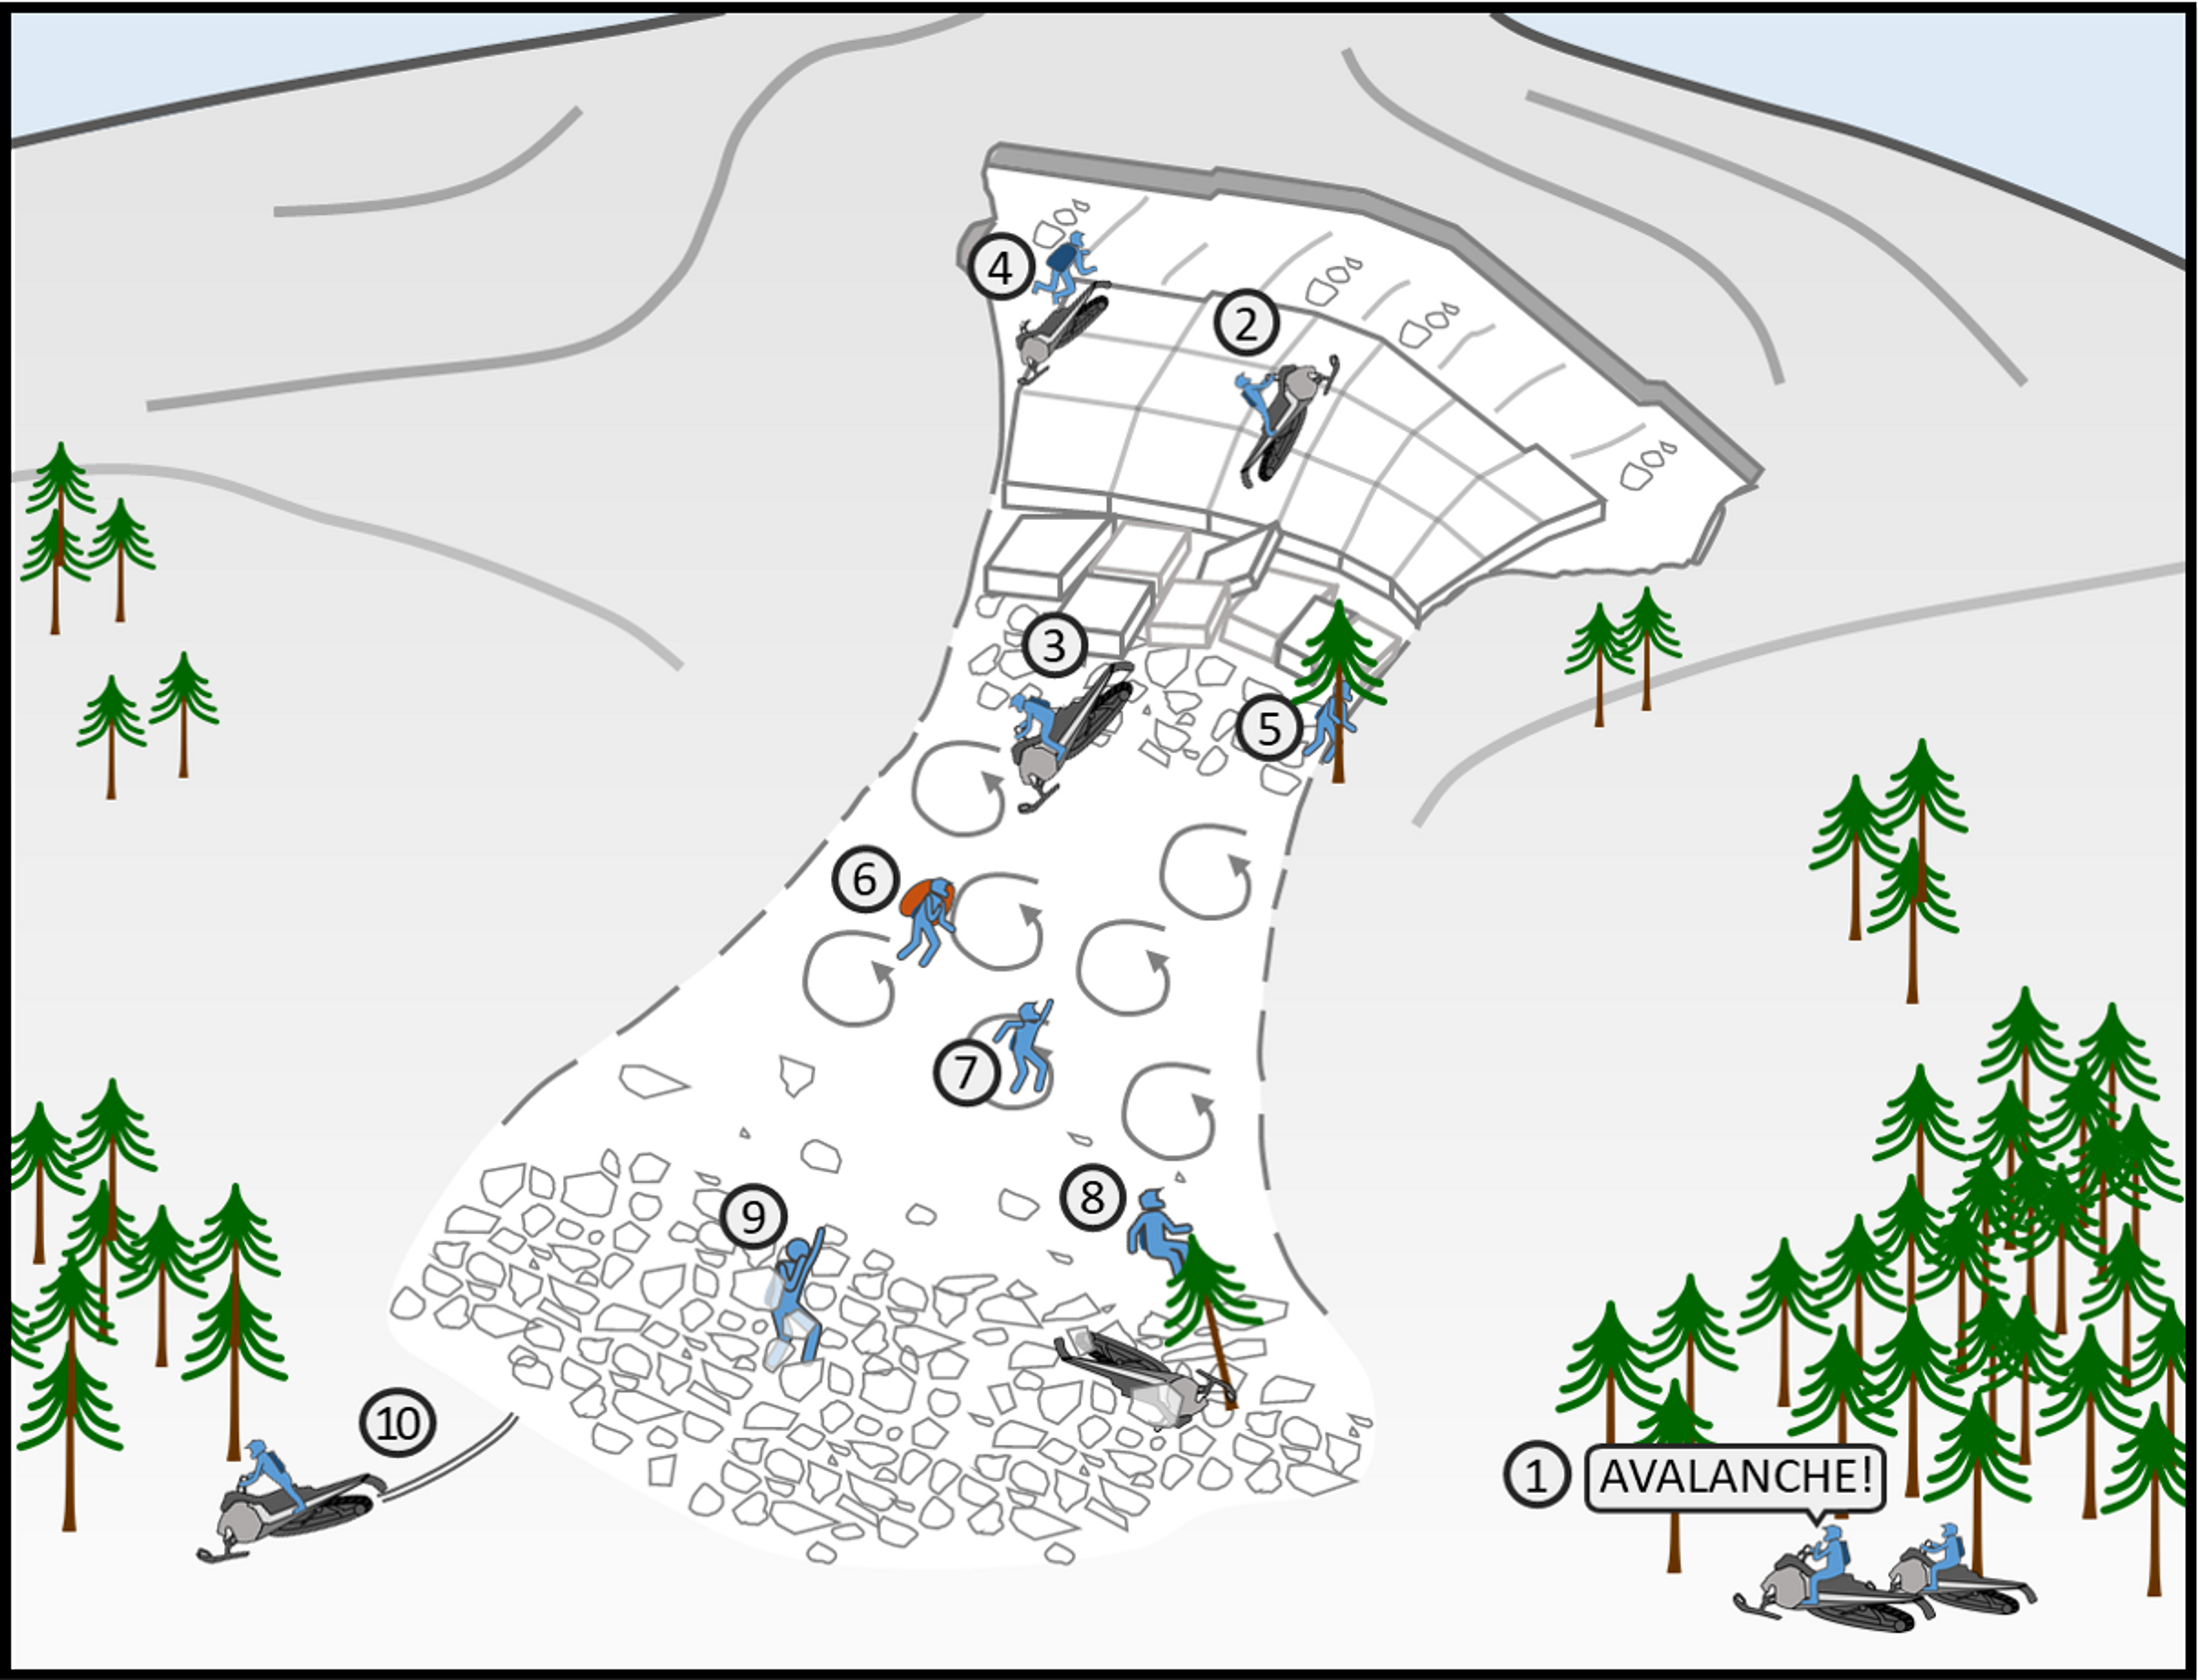 Diagram of avalanche survival techniques for snowmobilers